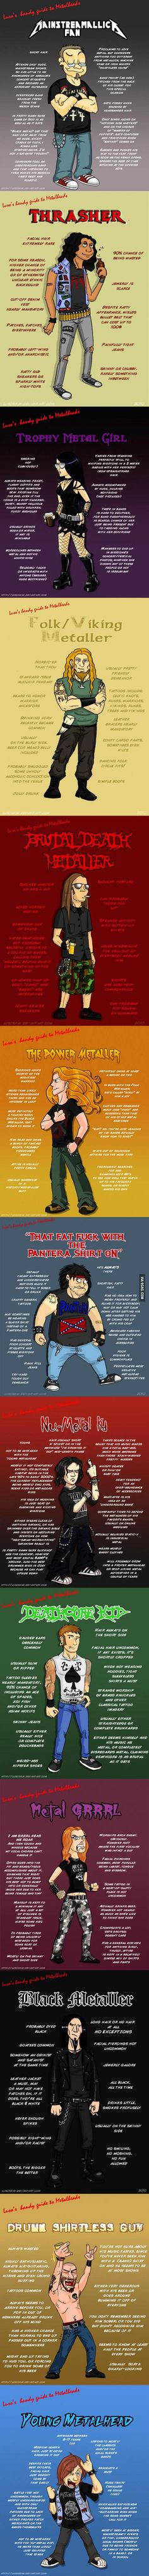 13 types of metalheads you'll meet at the festivals | DailyFailCentral